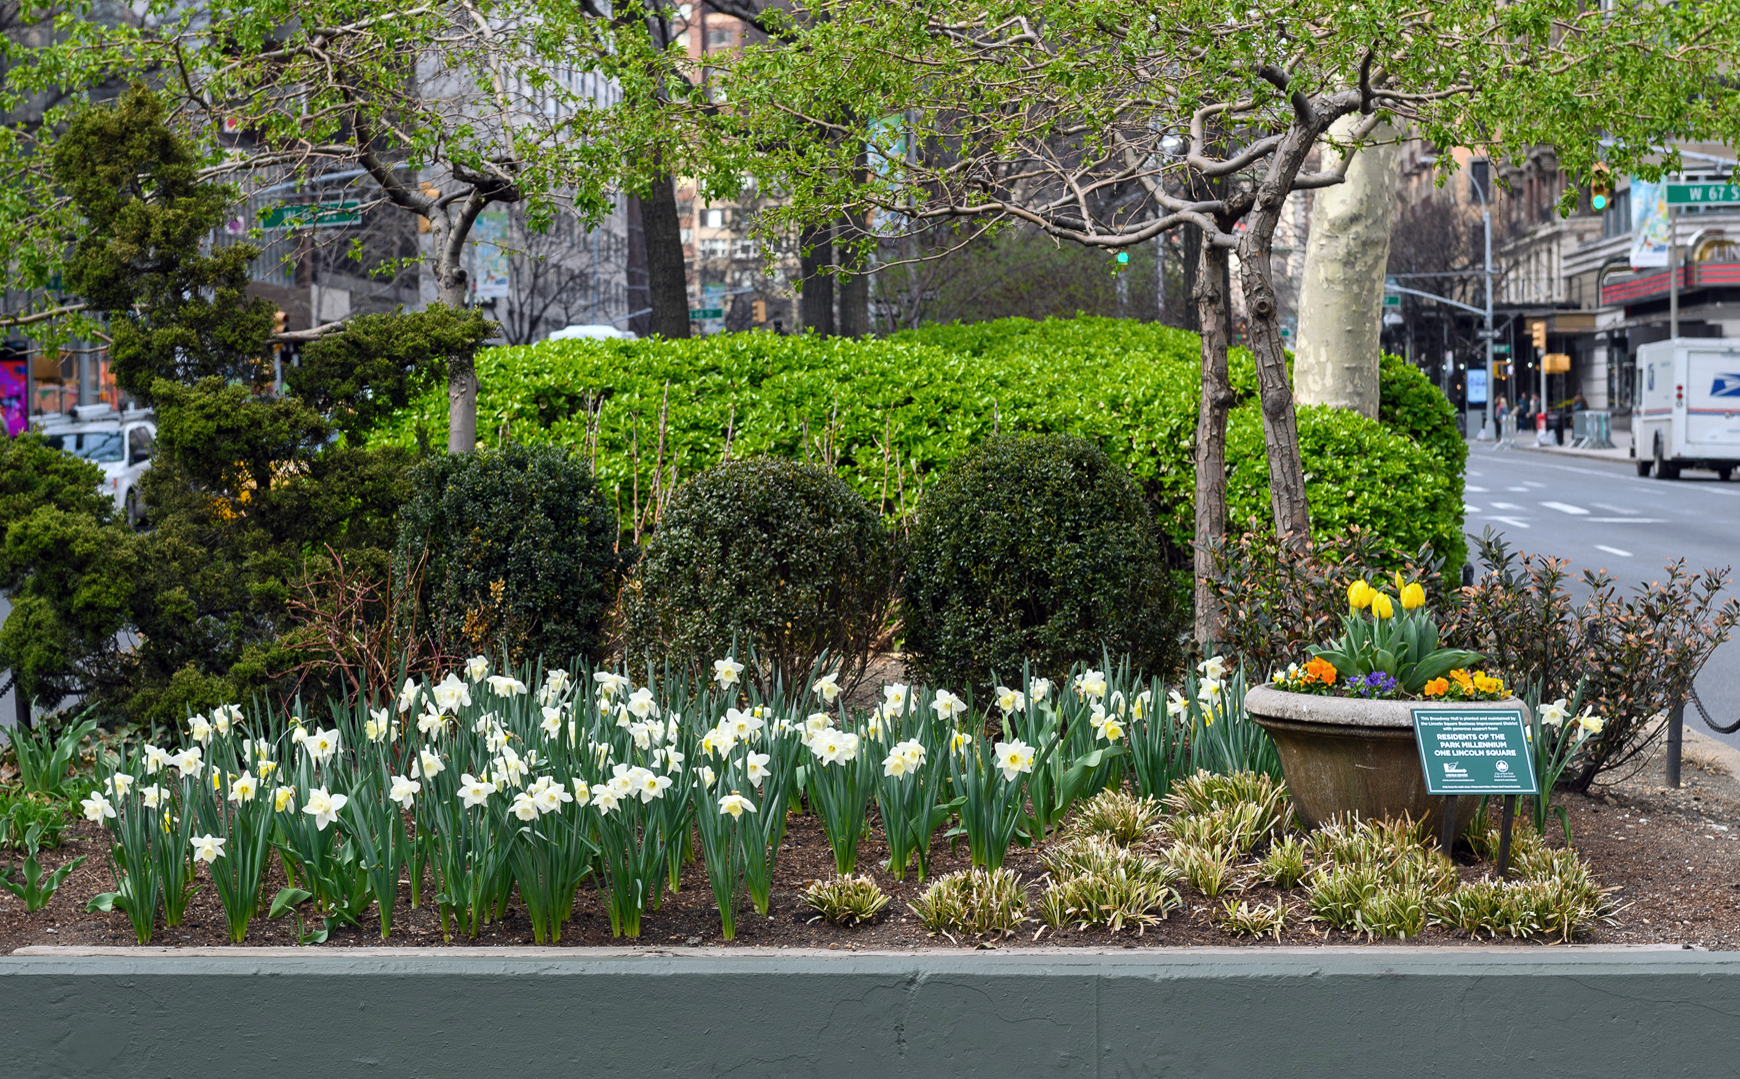 Daffodils planted in the Broadway Mall end bed at 66th Street with shrubs and a colorful urn.